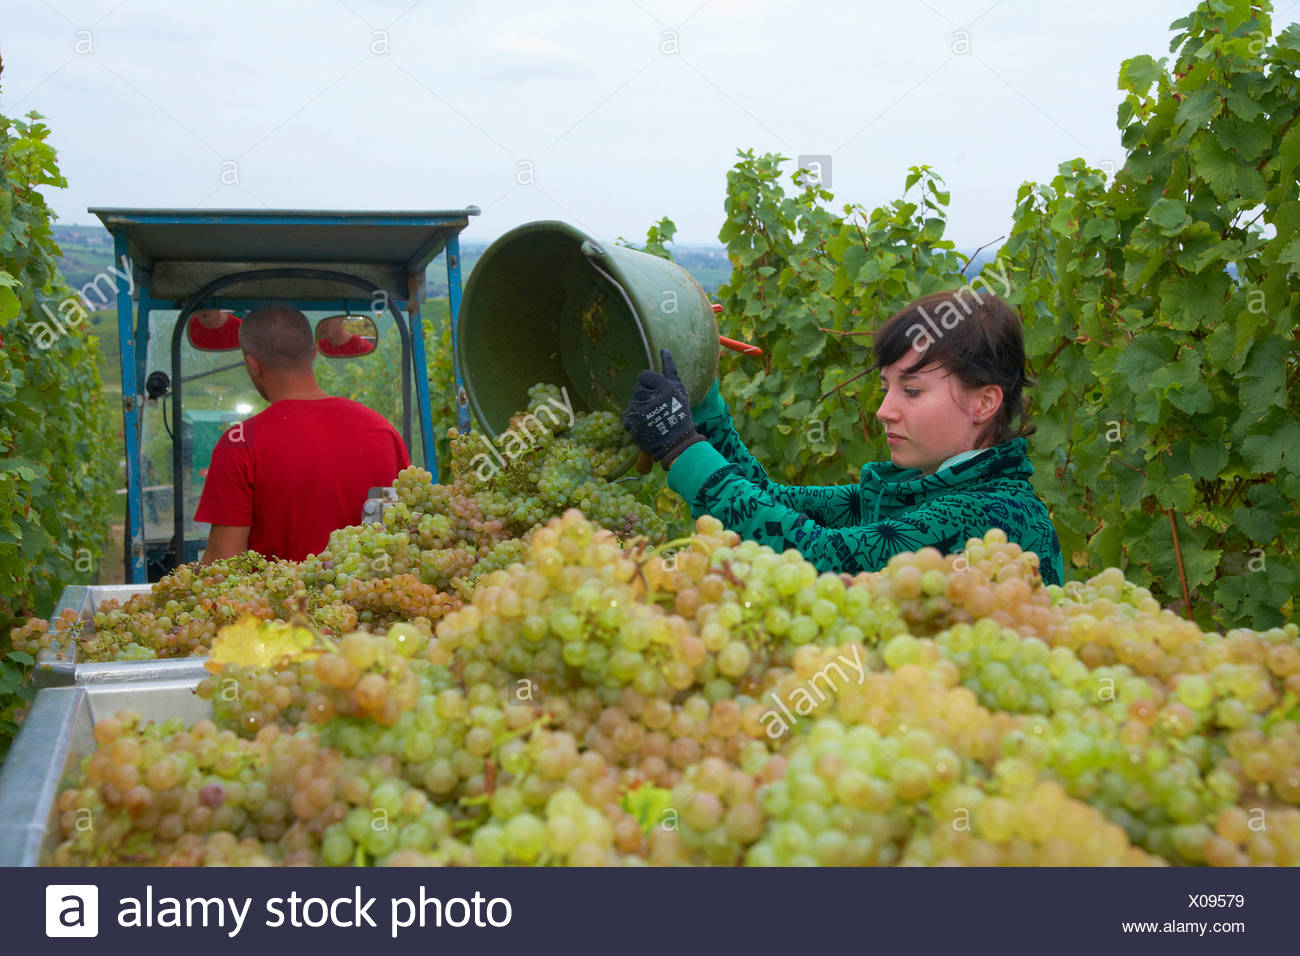 Vintage at wine-grower Rolf und Tina Pfaffmann GbR at Frankweiler Deutsche Weinstrasse Palatinate Rhineland-Palatinate Germany E - Stock Image